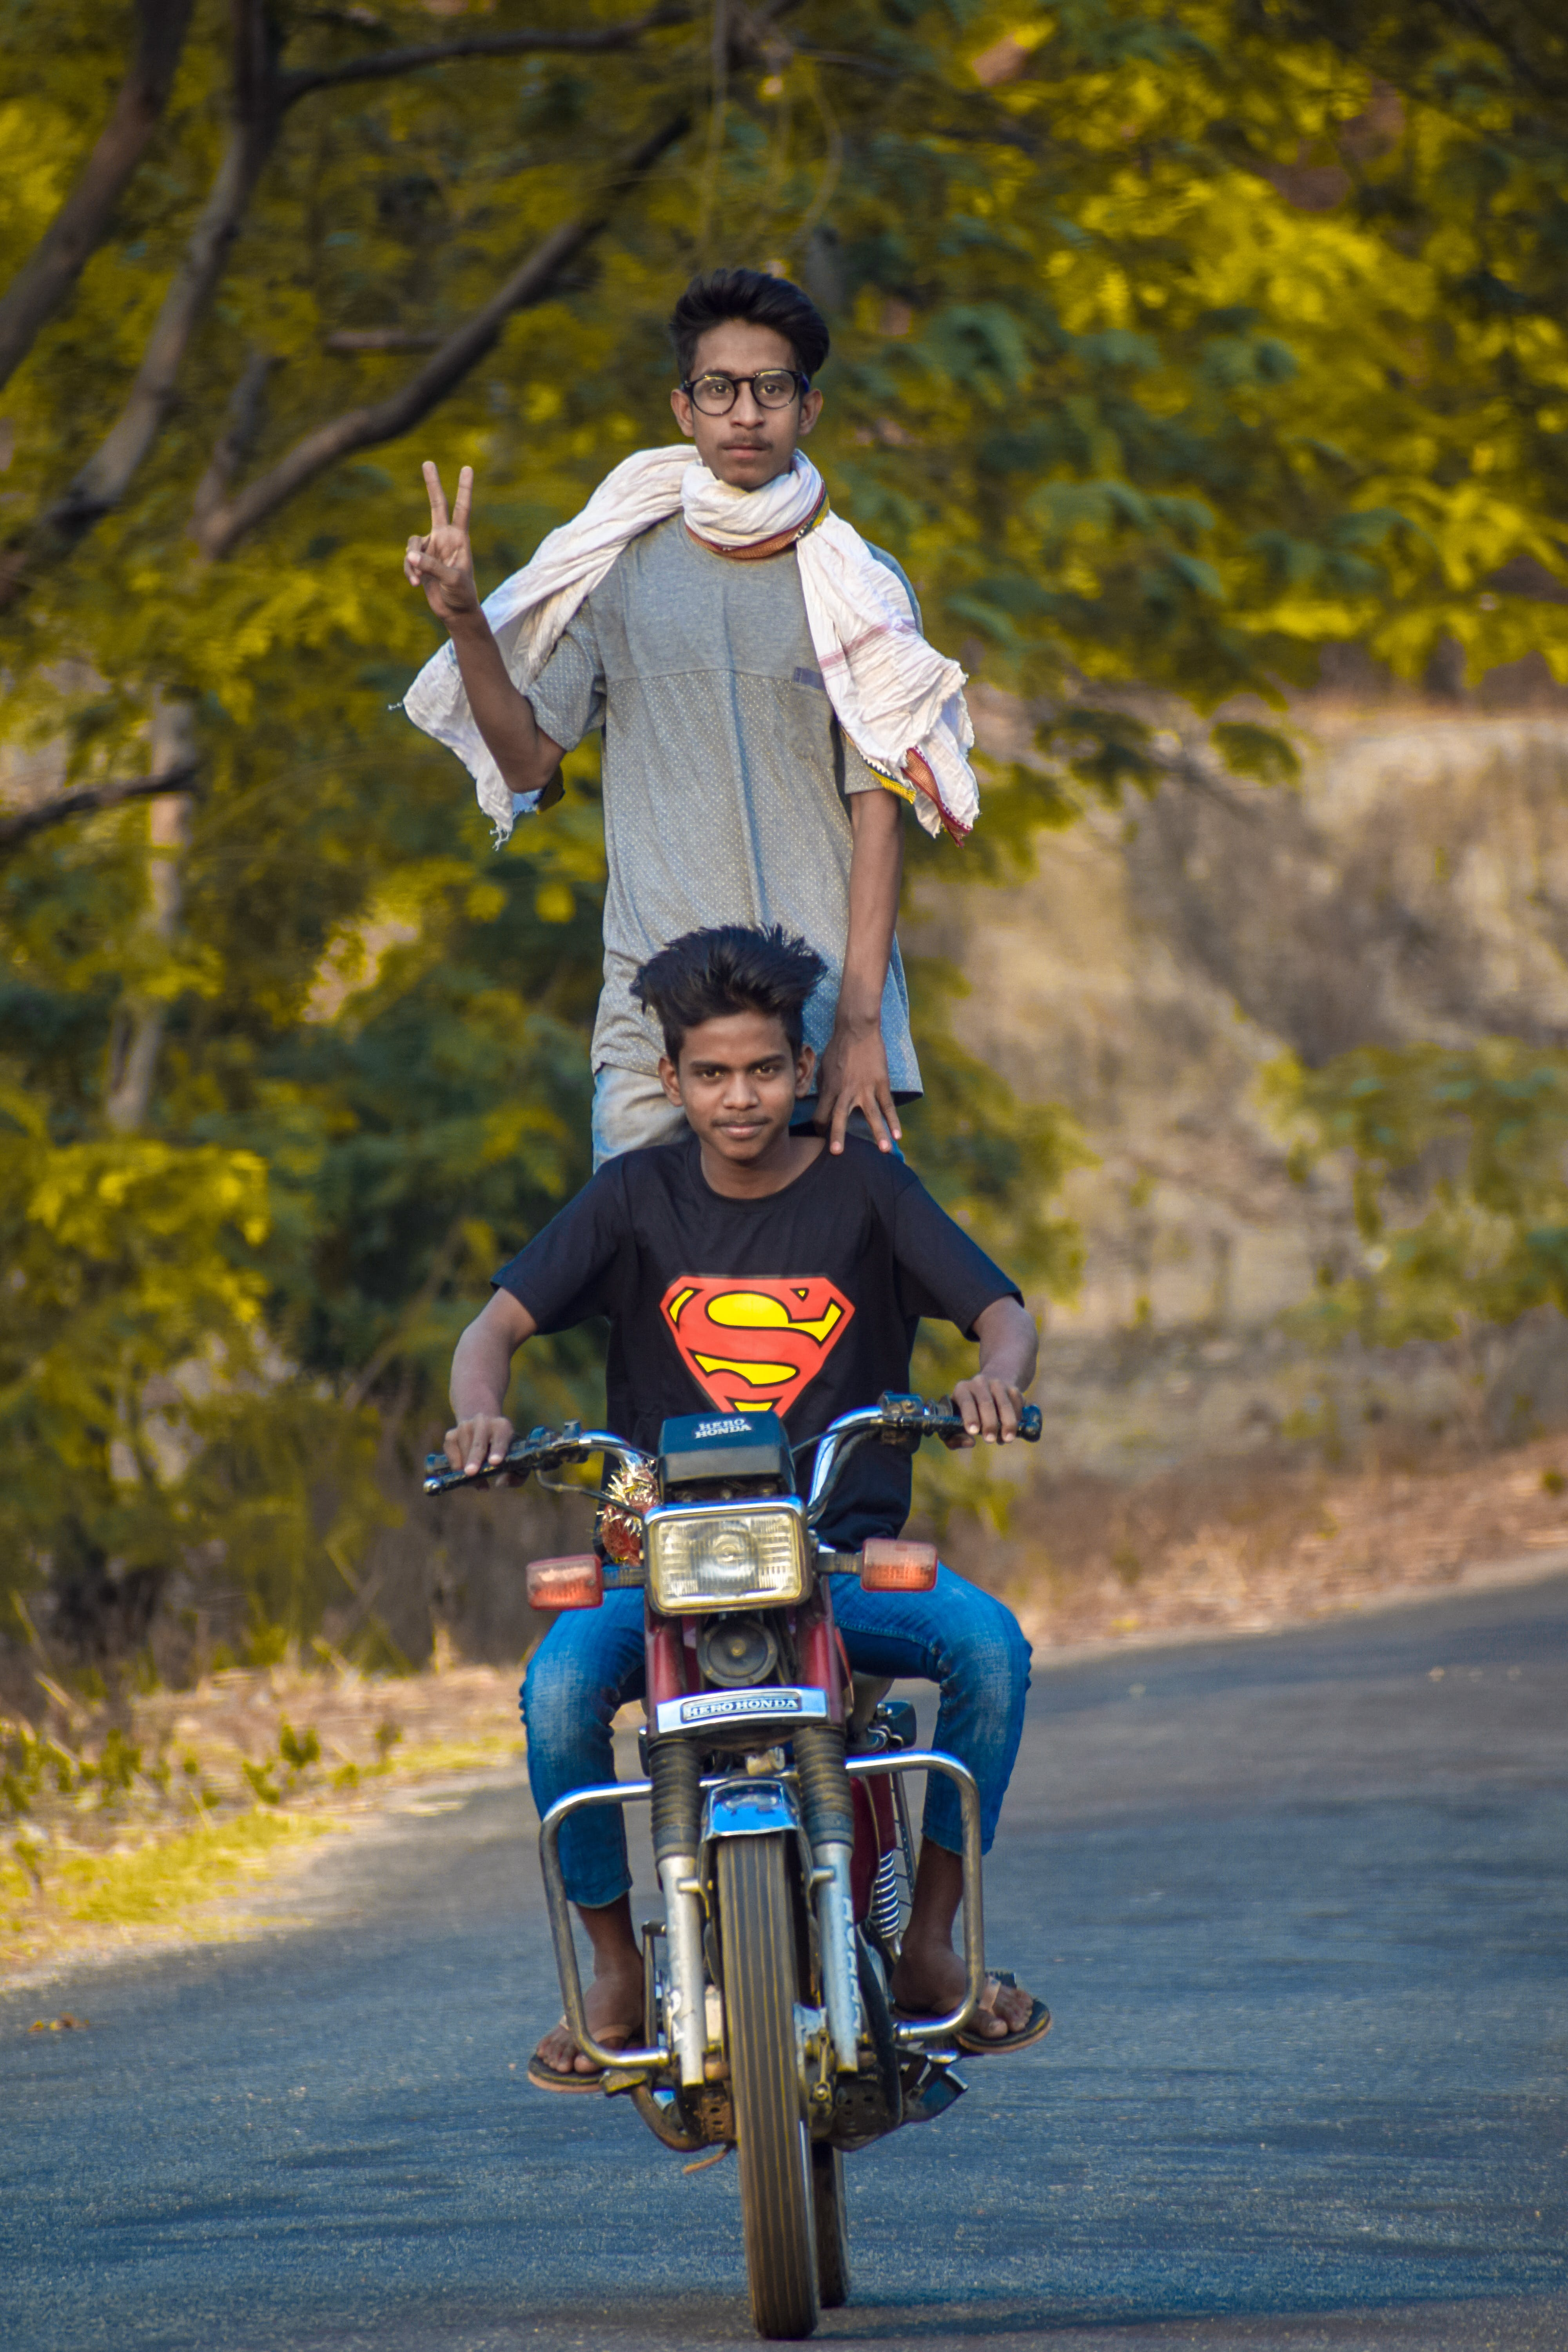 Two Men Riding a Standard Motorcycle